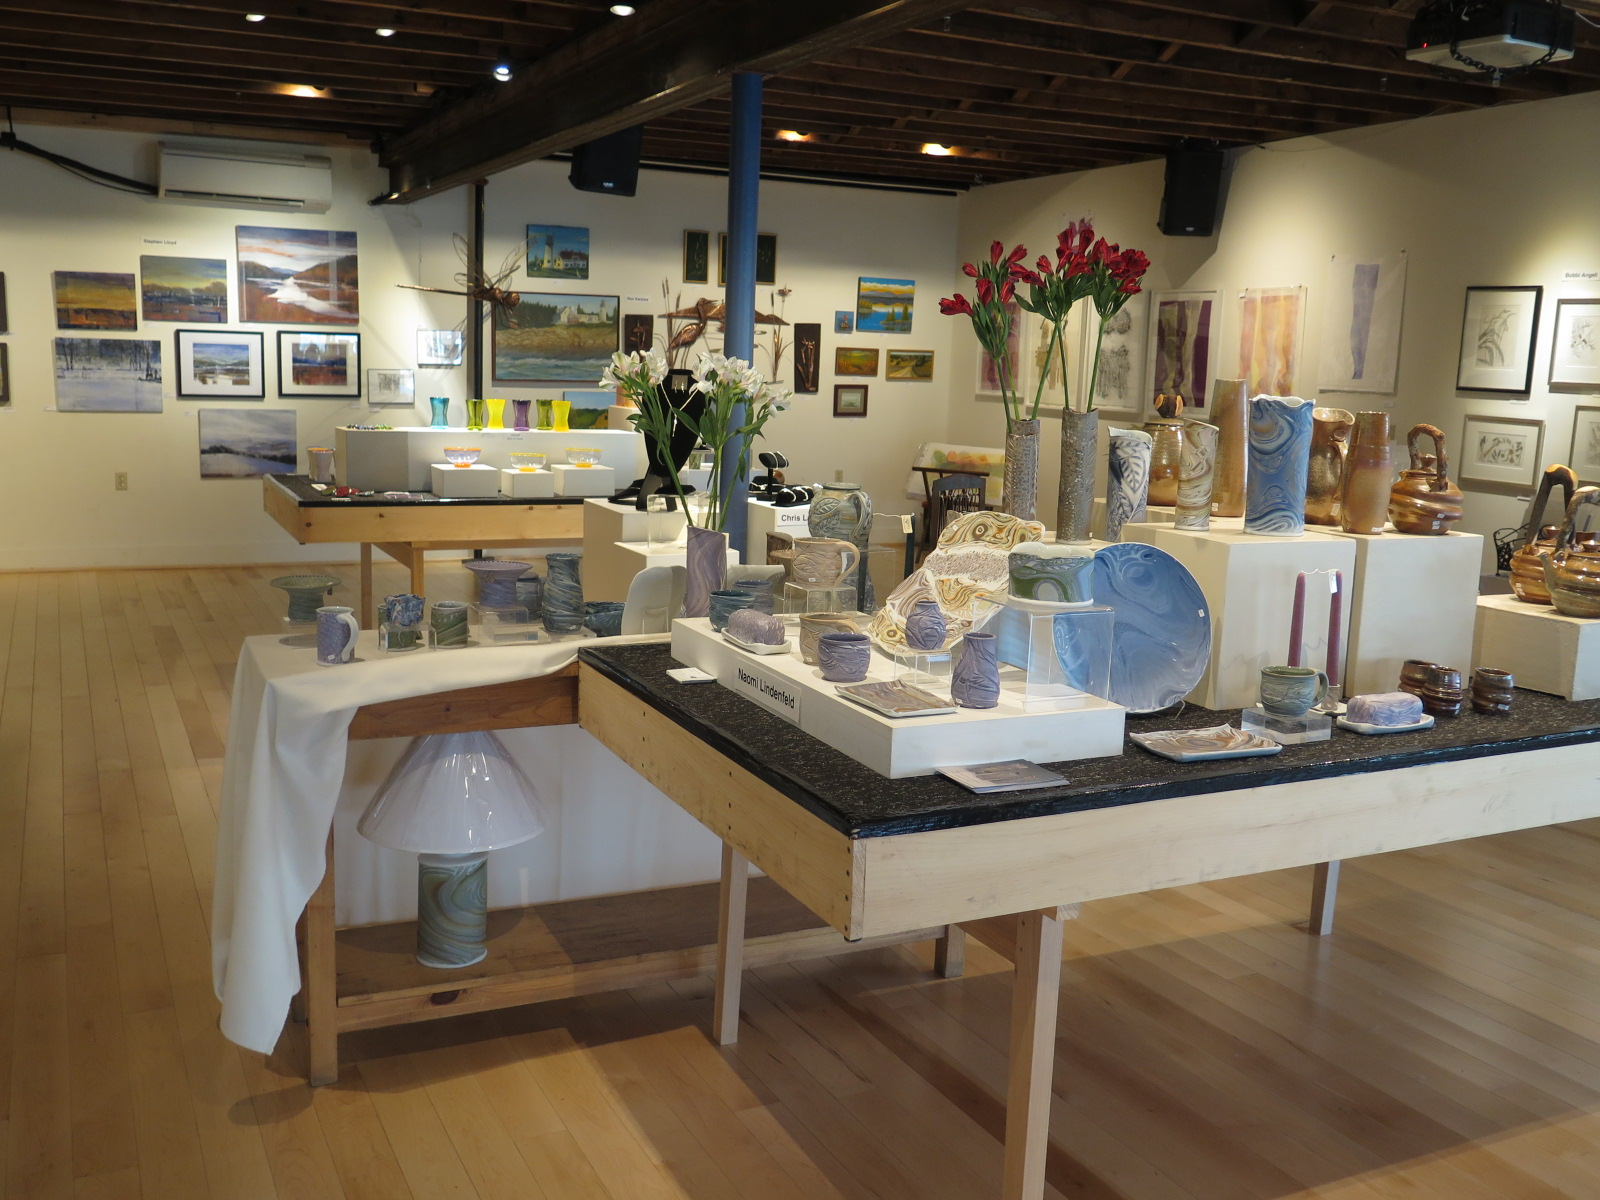 Brattleboro-West Arts Holiday Sale @ 118 Elliot | Brattleboro | Vermont | United States